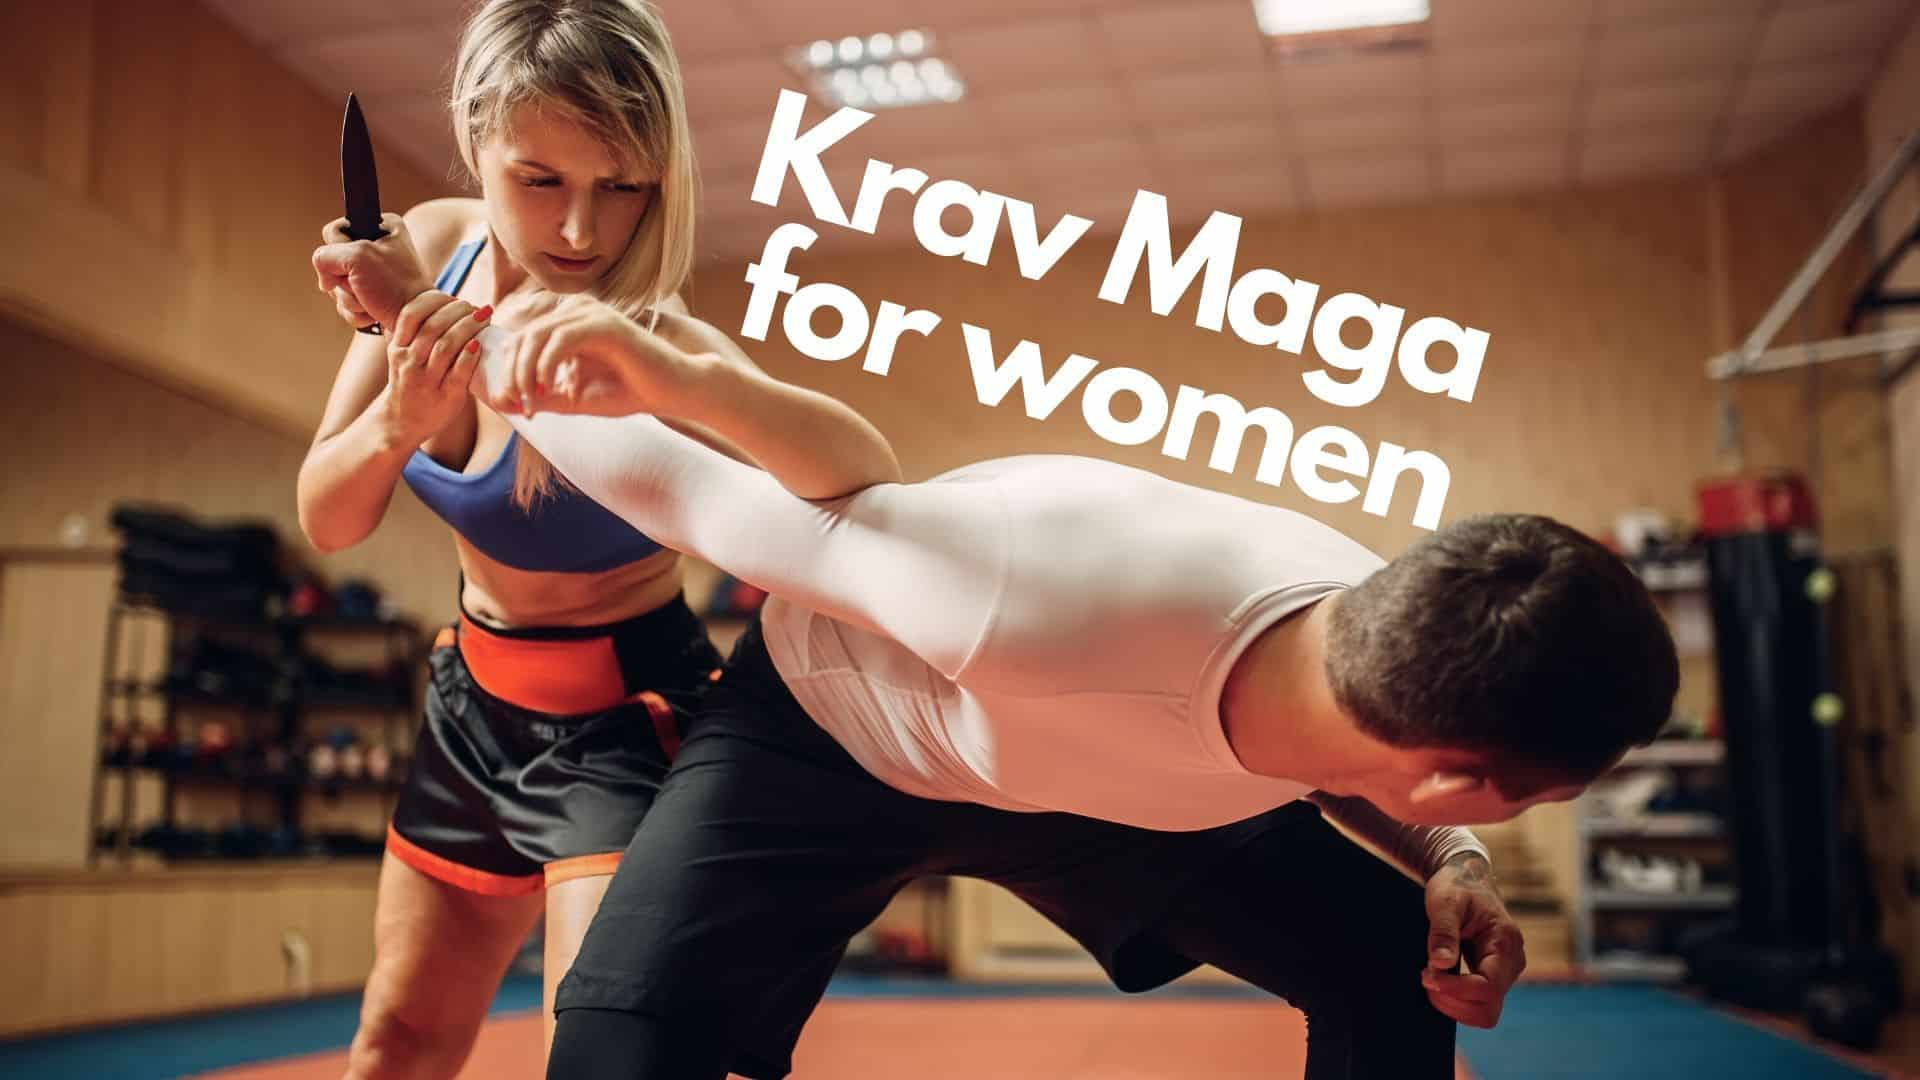 Krav Maga effective self-defense for women | Why it's so popular